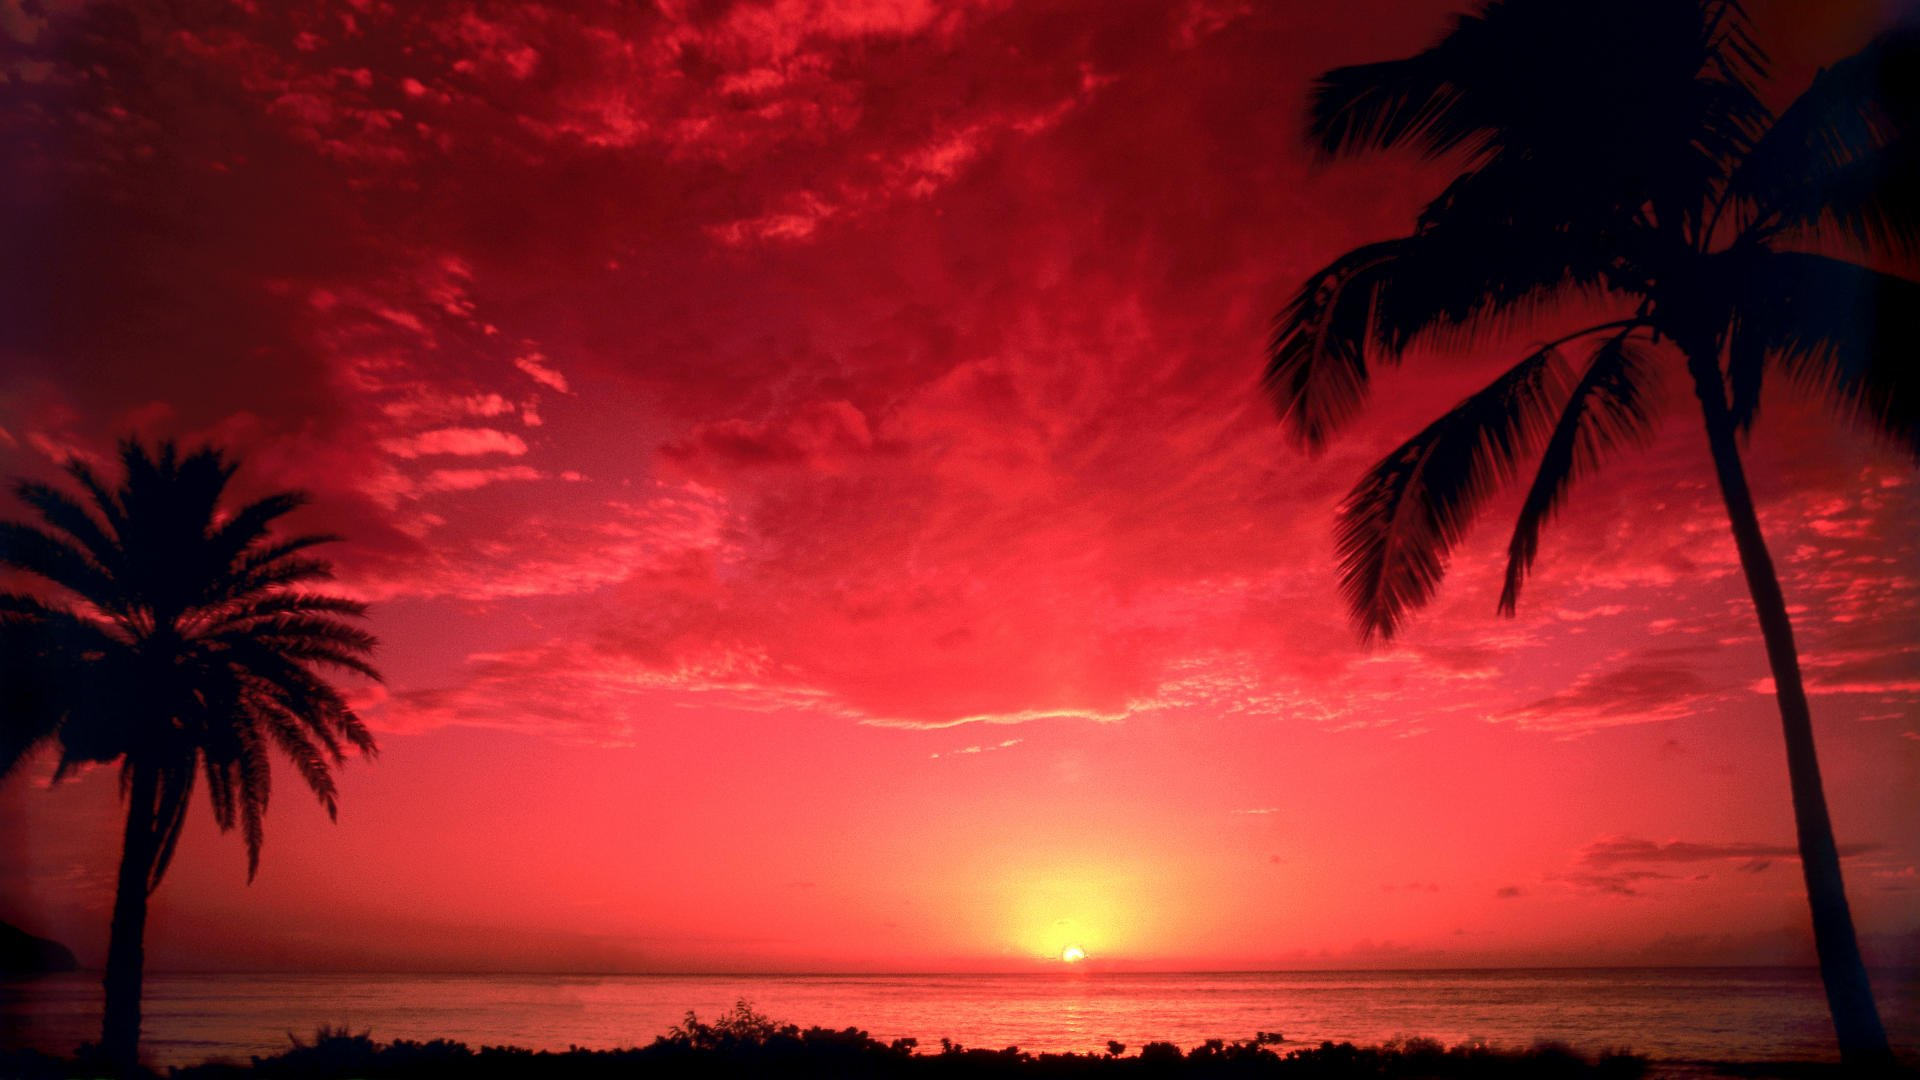 Sunset Desktop Backgrounds and Wallpaper   South Pacific Sunset 1920x1080